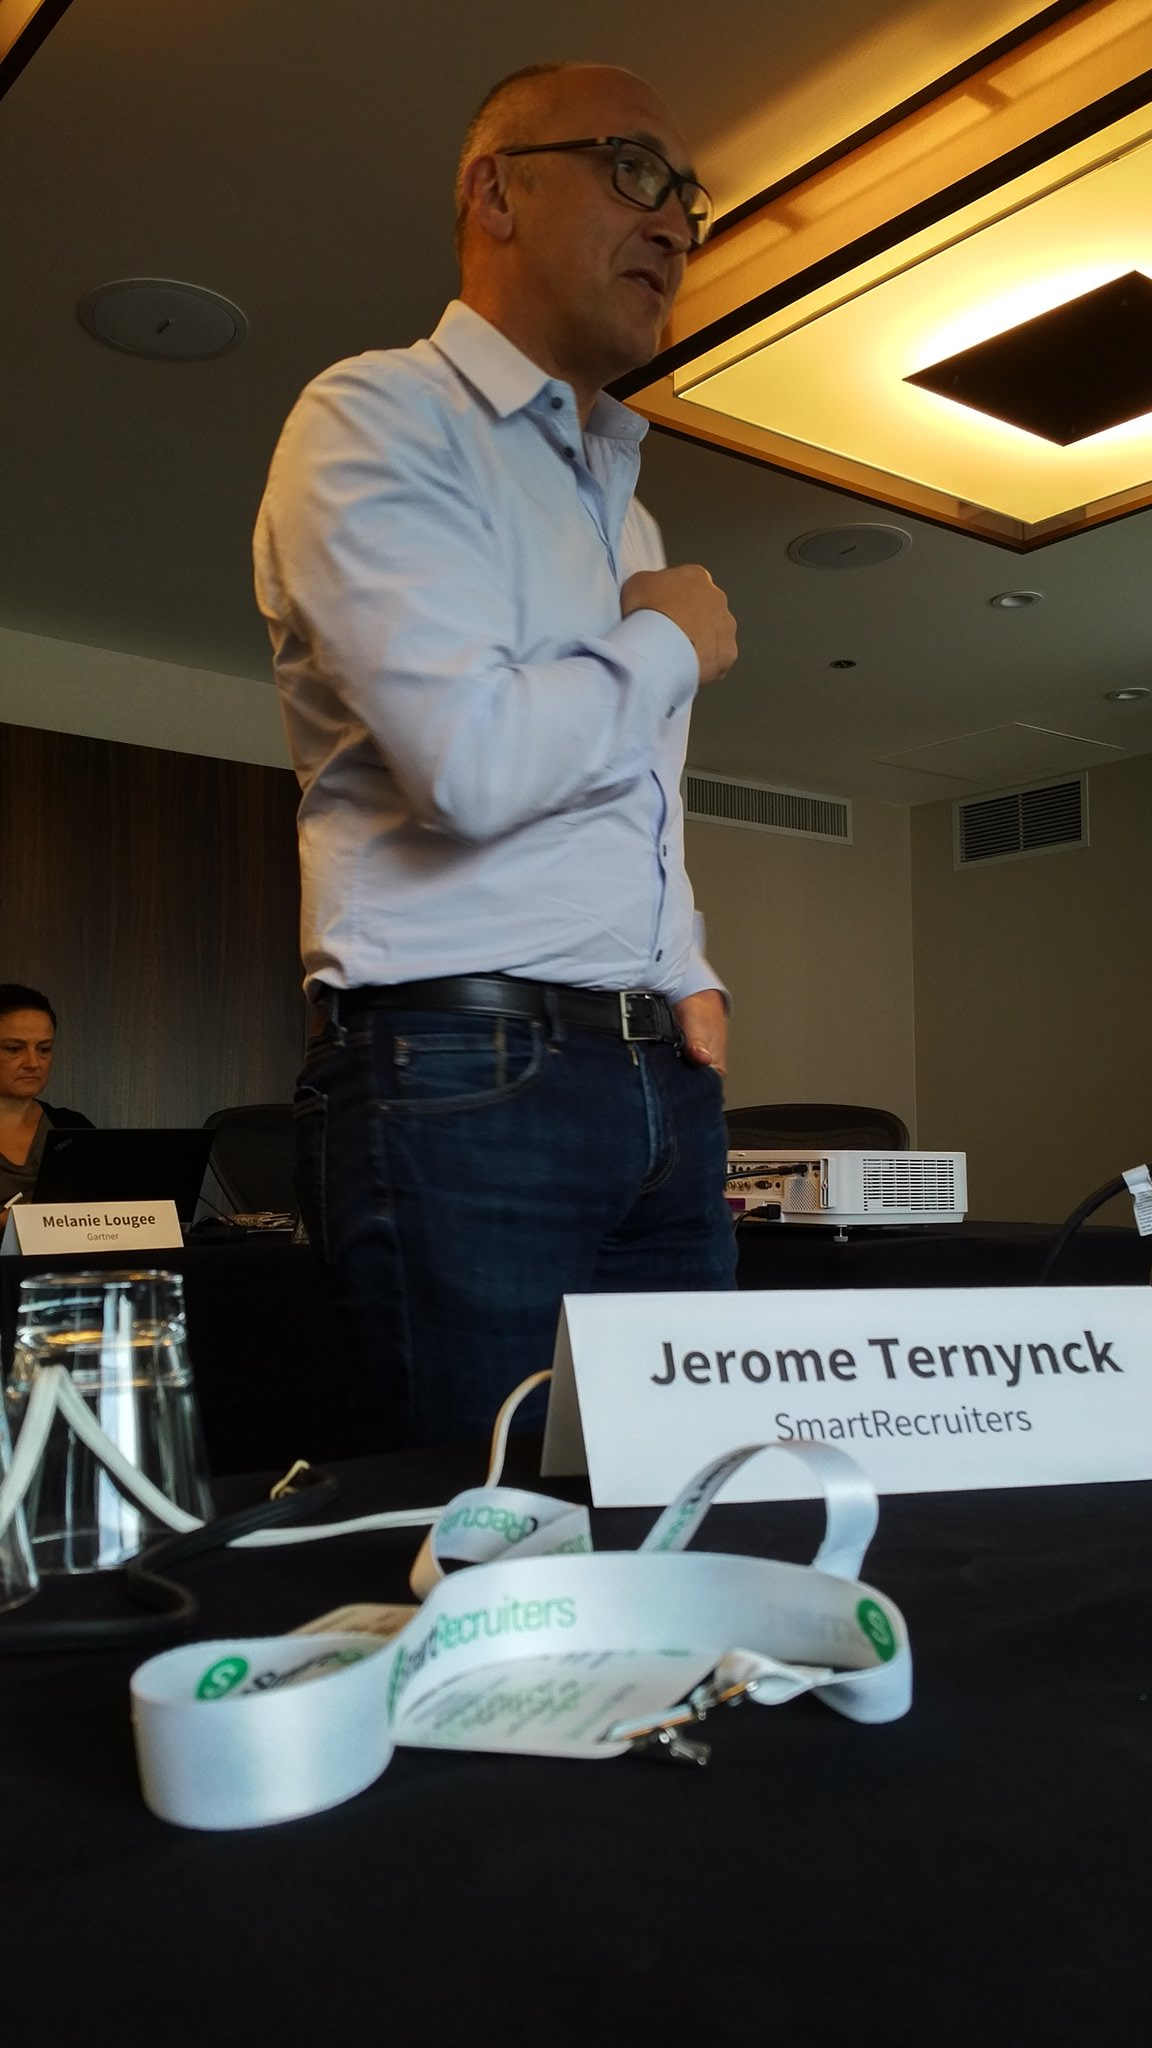 Next up -  @SmartRecruiters @jerometernynck on the Why? #hire17 https://t.co/E3JlDHRcos